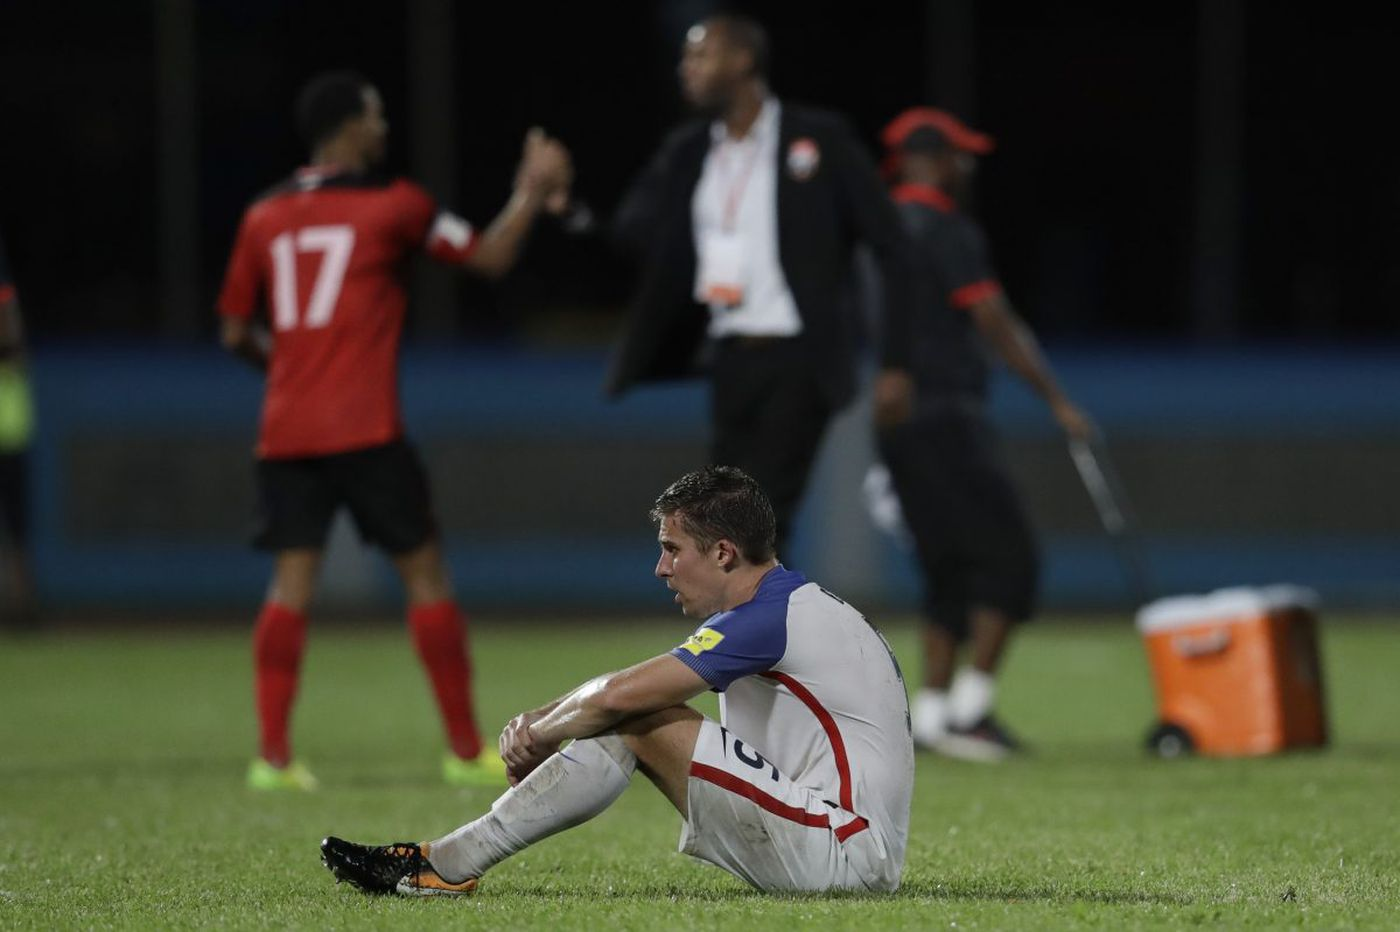 Epic failure of men's national team overshadows the year in U.S. soccer